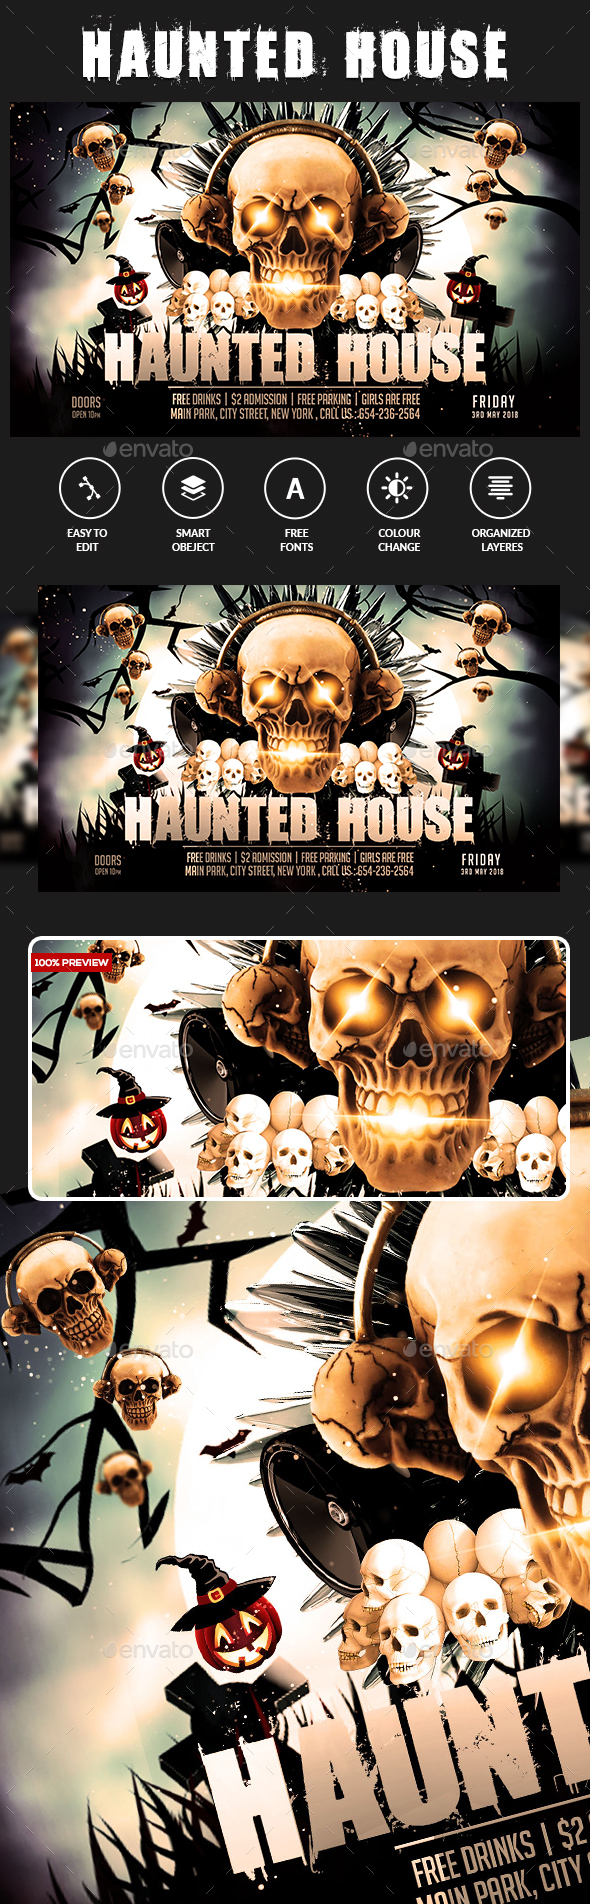 Hunted House Flyer - Clubs & Parties Events